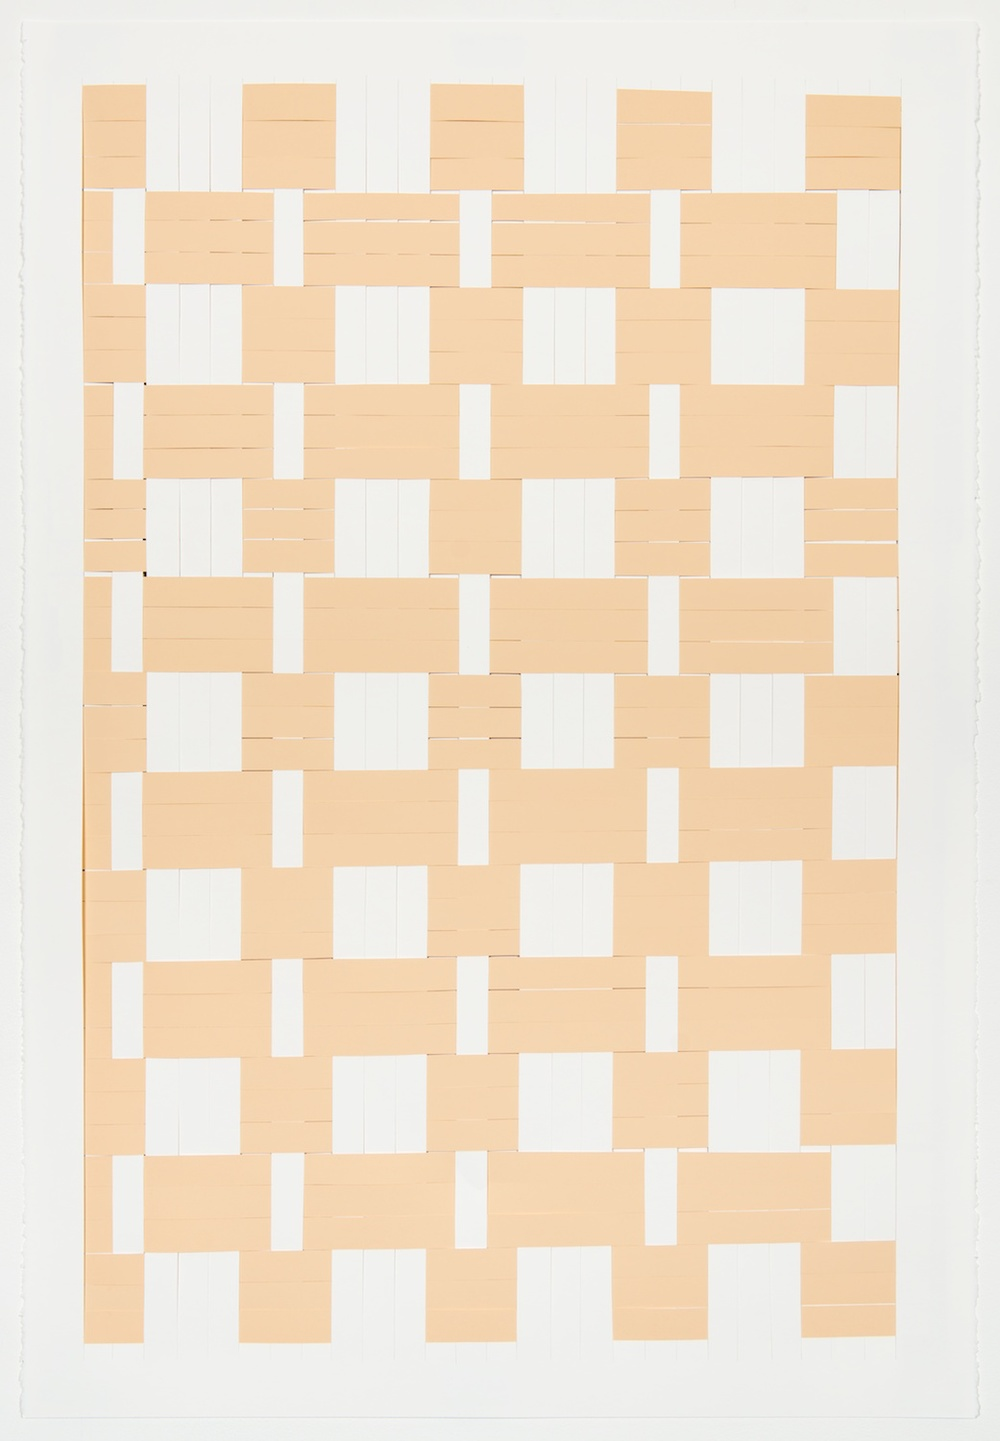 Michelle Graber  Untitled  2013 Paper and Color-aid 44h x 30w in MGrab297